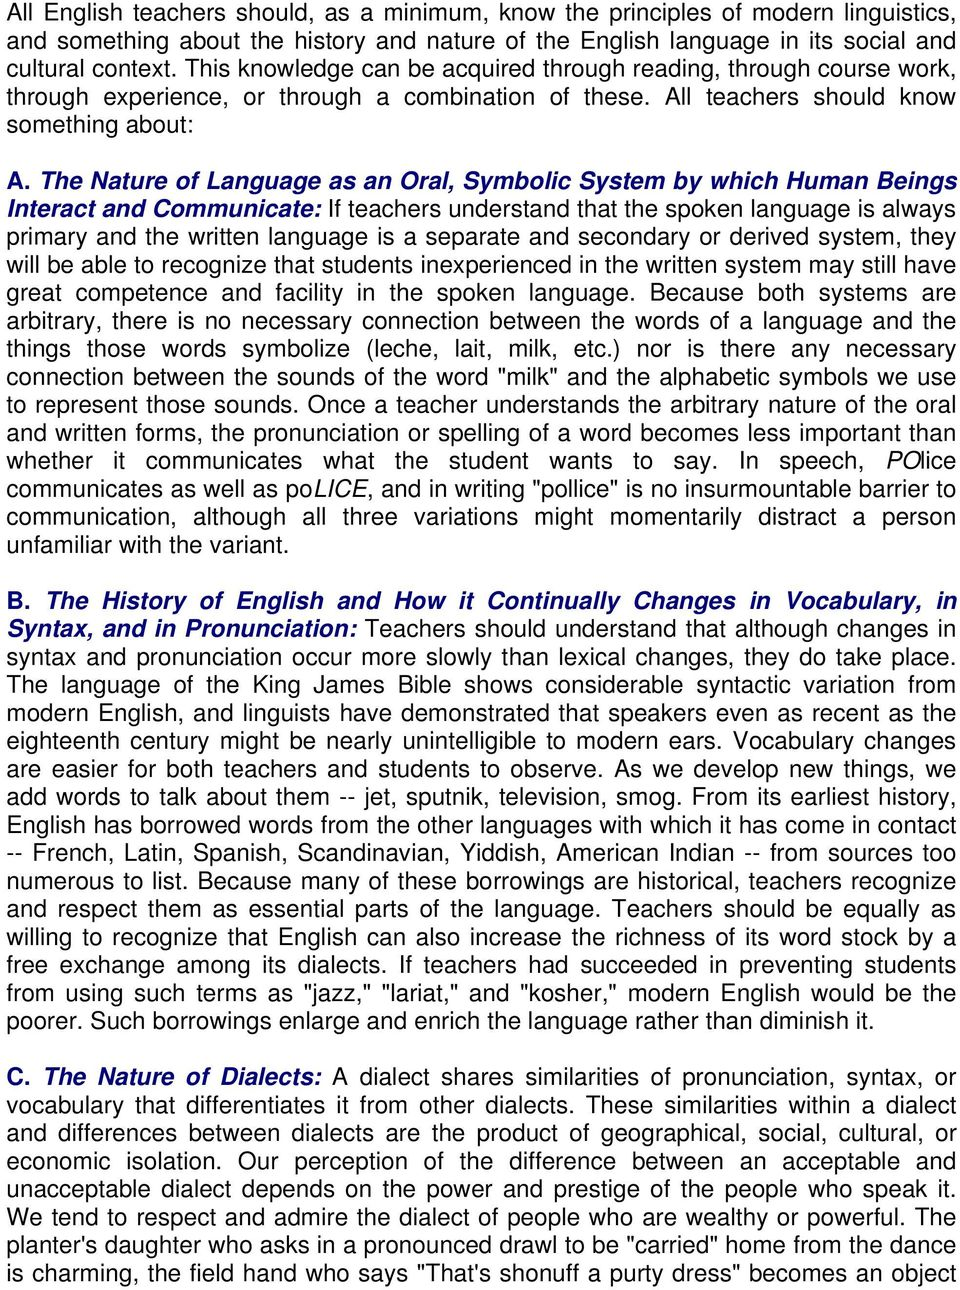 The Nature of Language as an Oral, Symbolic System by which Human Beings Interact and Communicate: If teachers understand that the spoken language is always primary and the written language is a